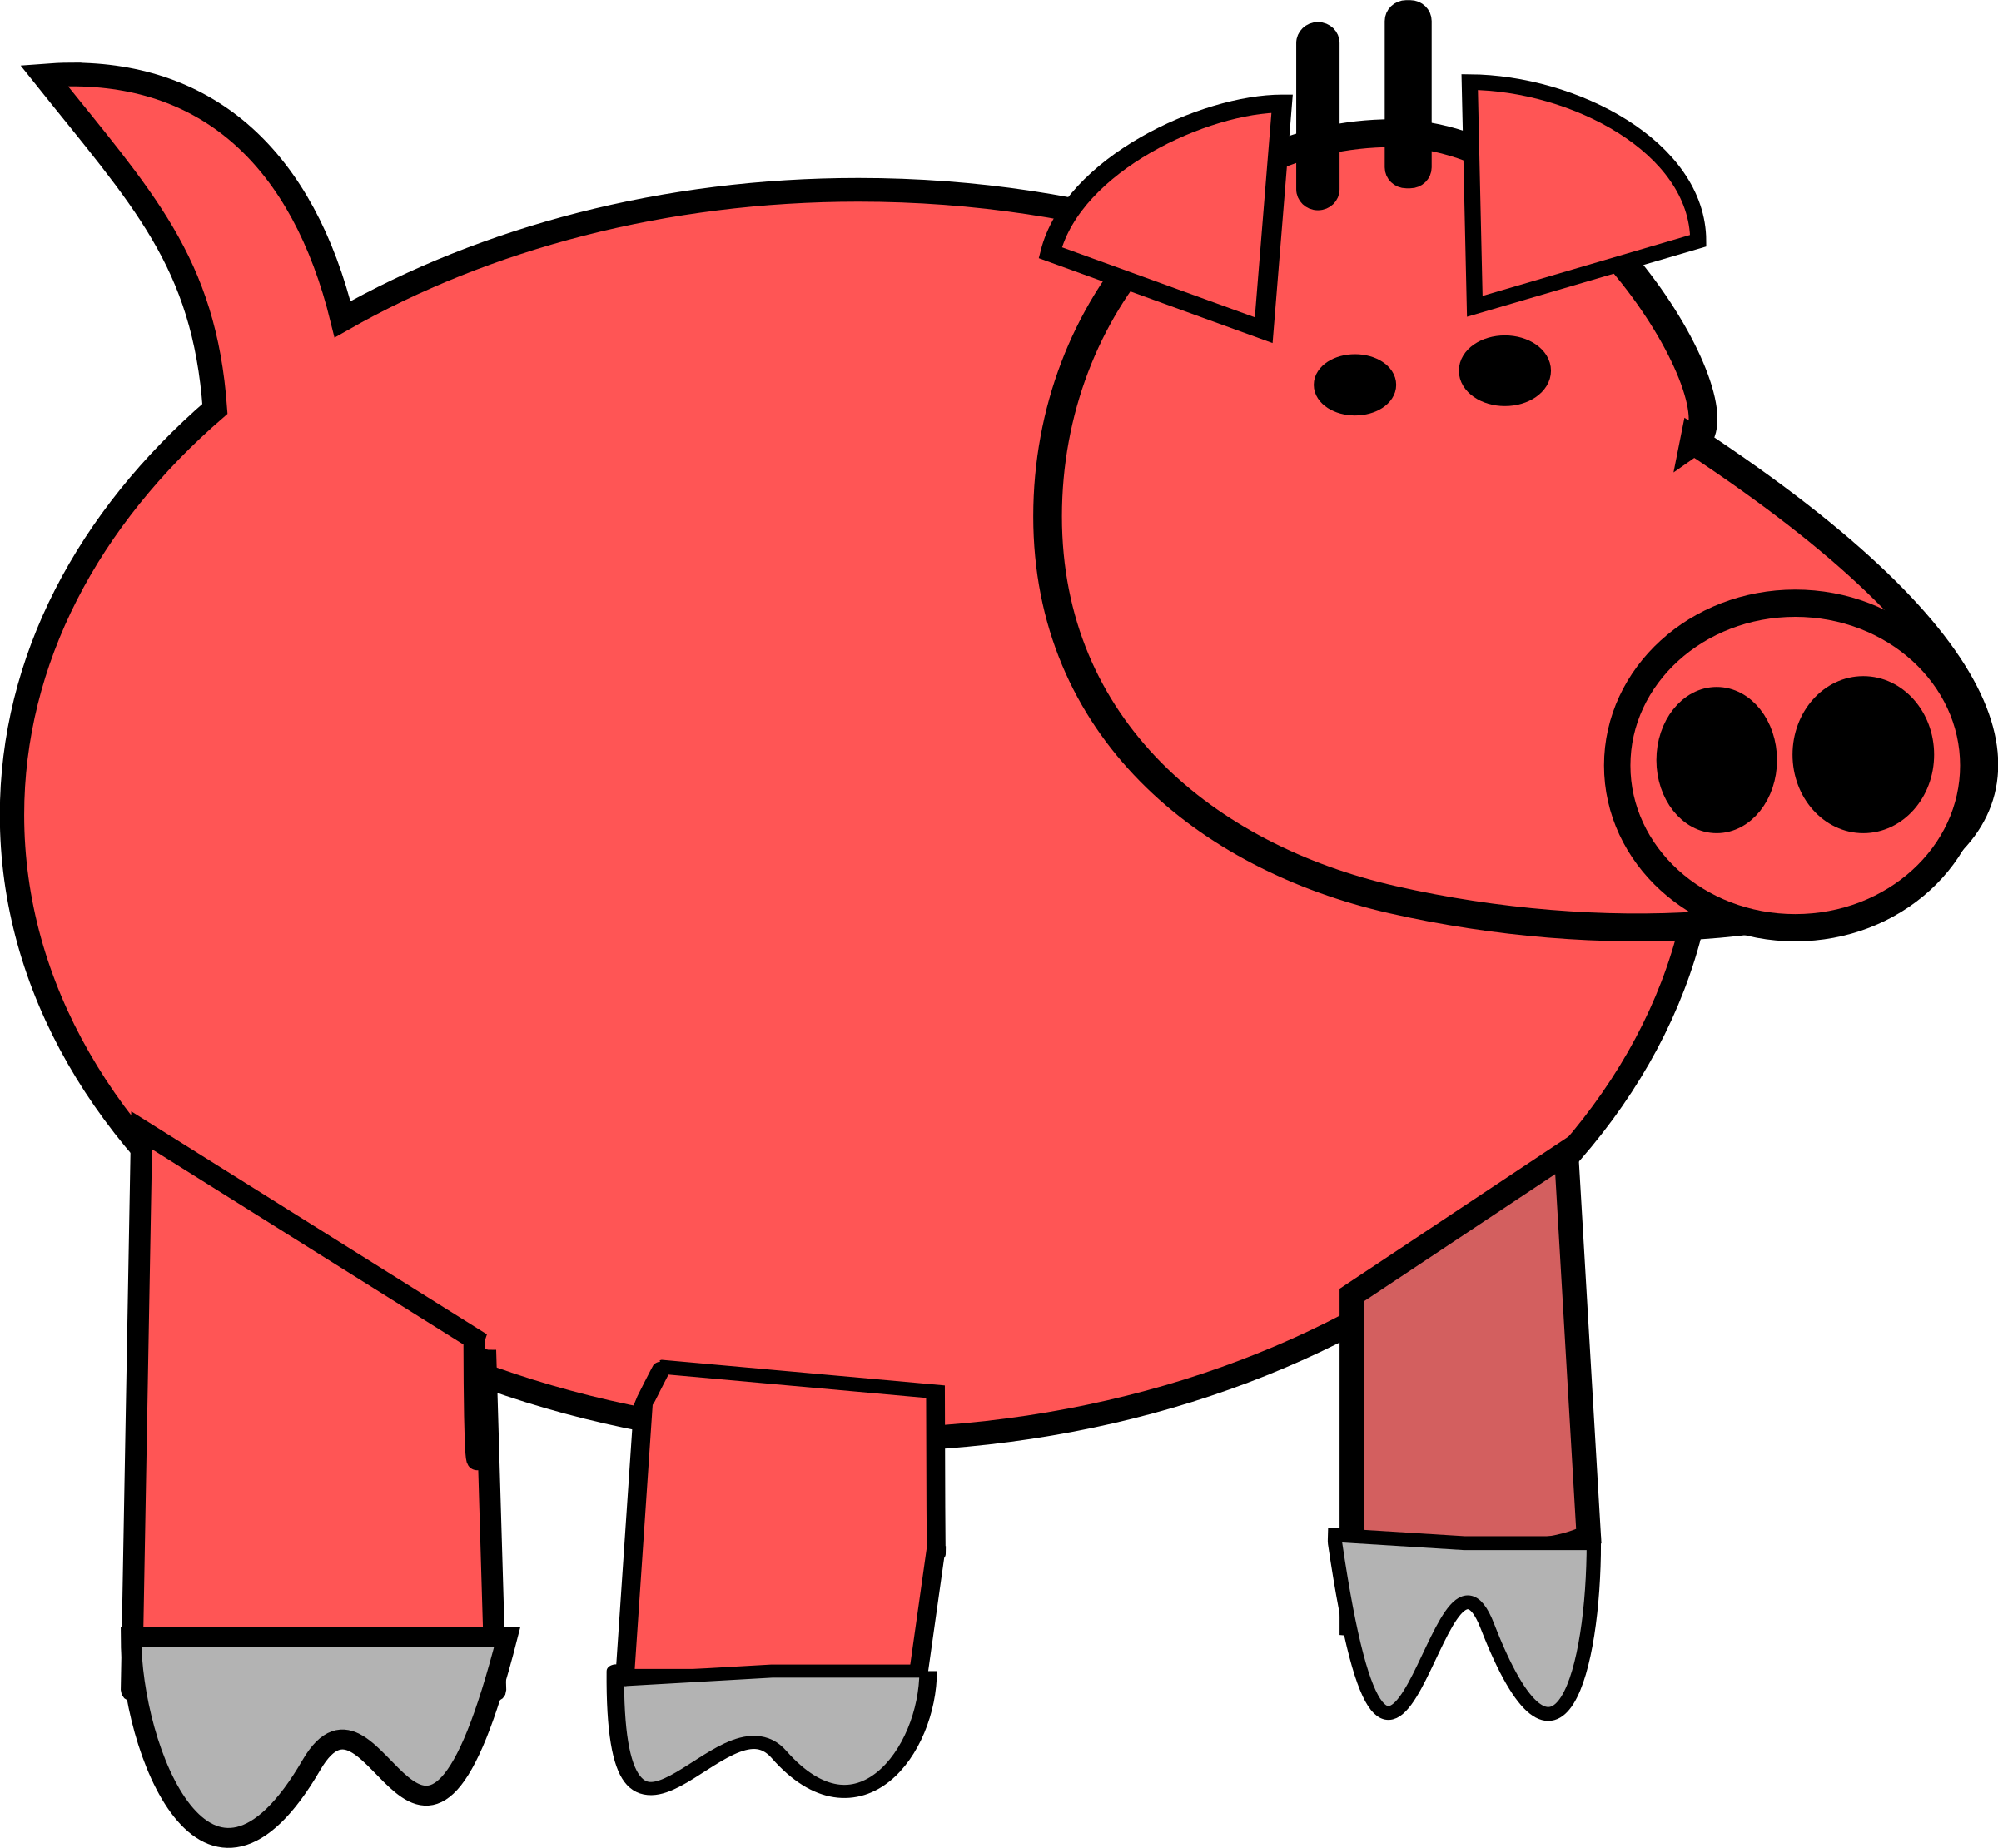 cartoon pig by PeterBrough